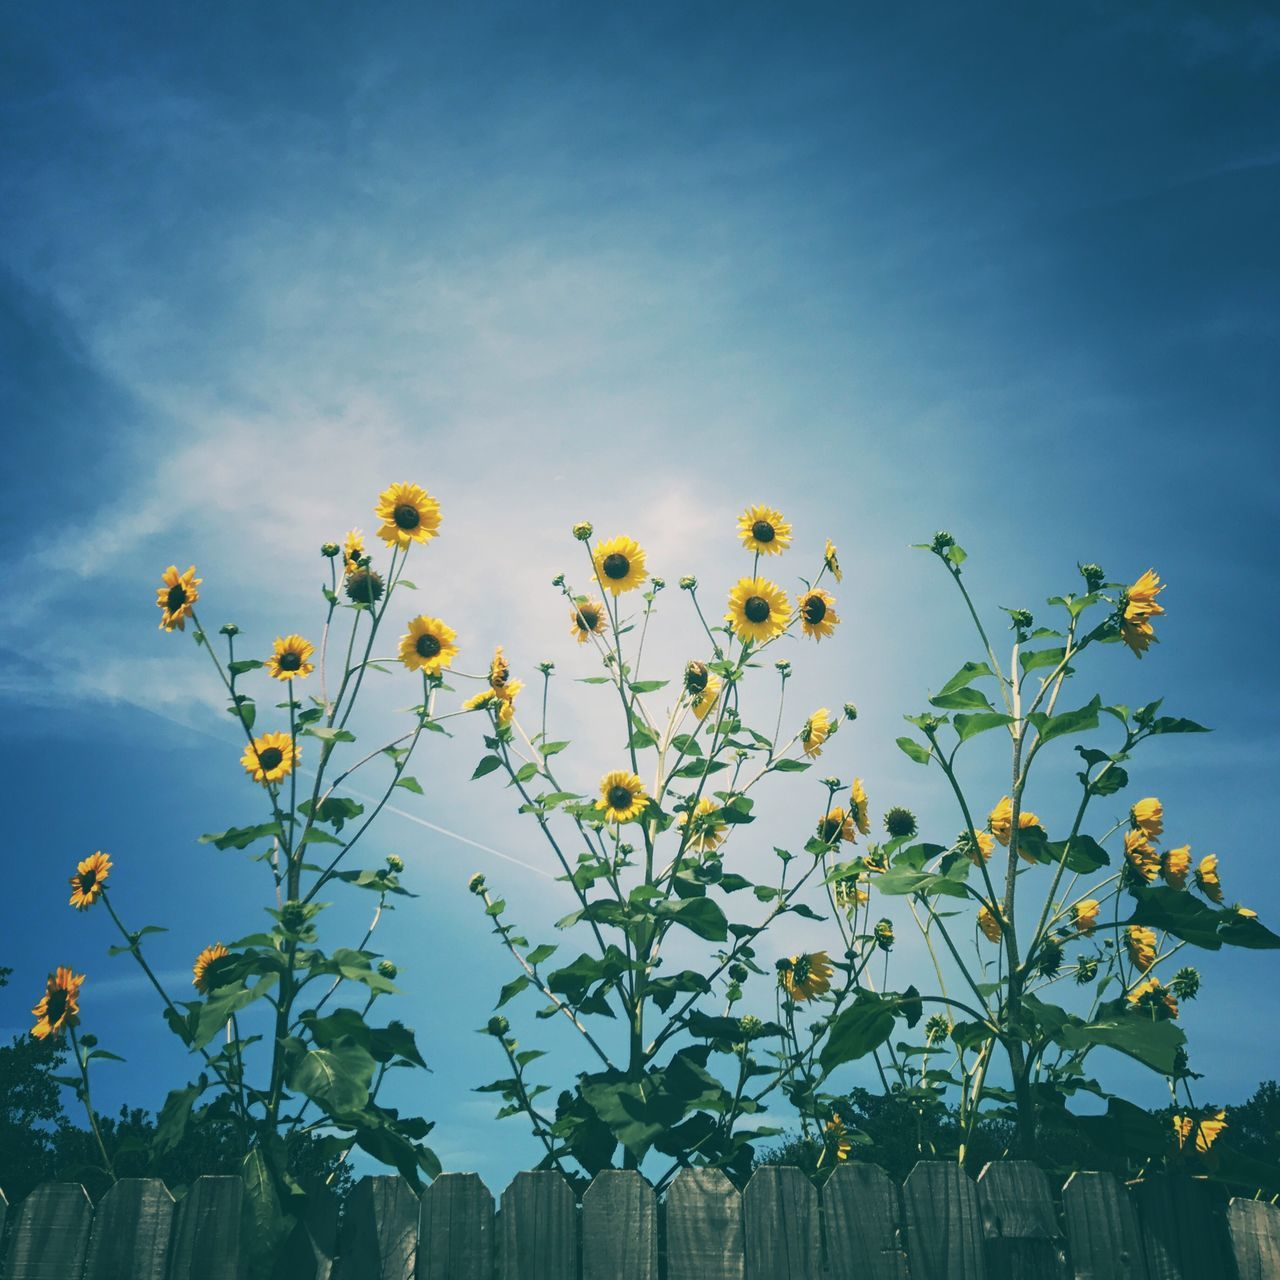 growth, plant, flower, nature, no people, beauty in nature, sky, blue, outdoors, day, fragility, freshness